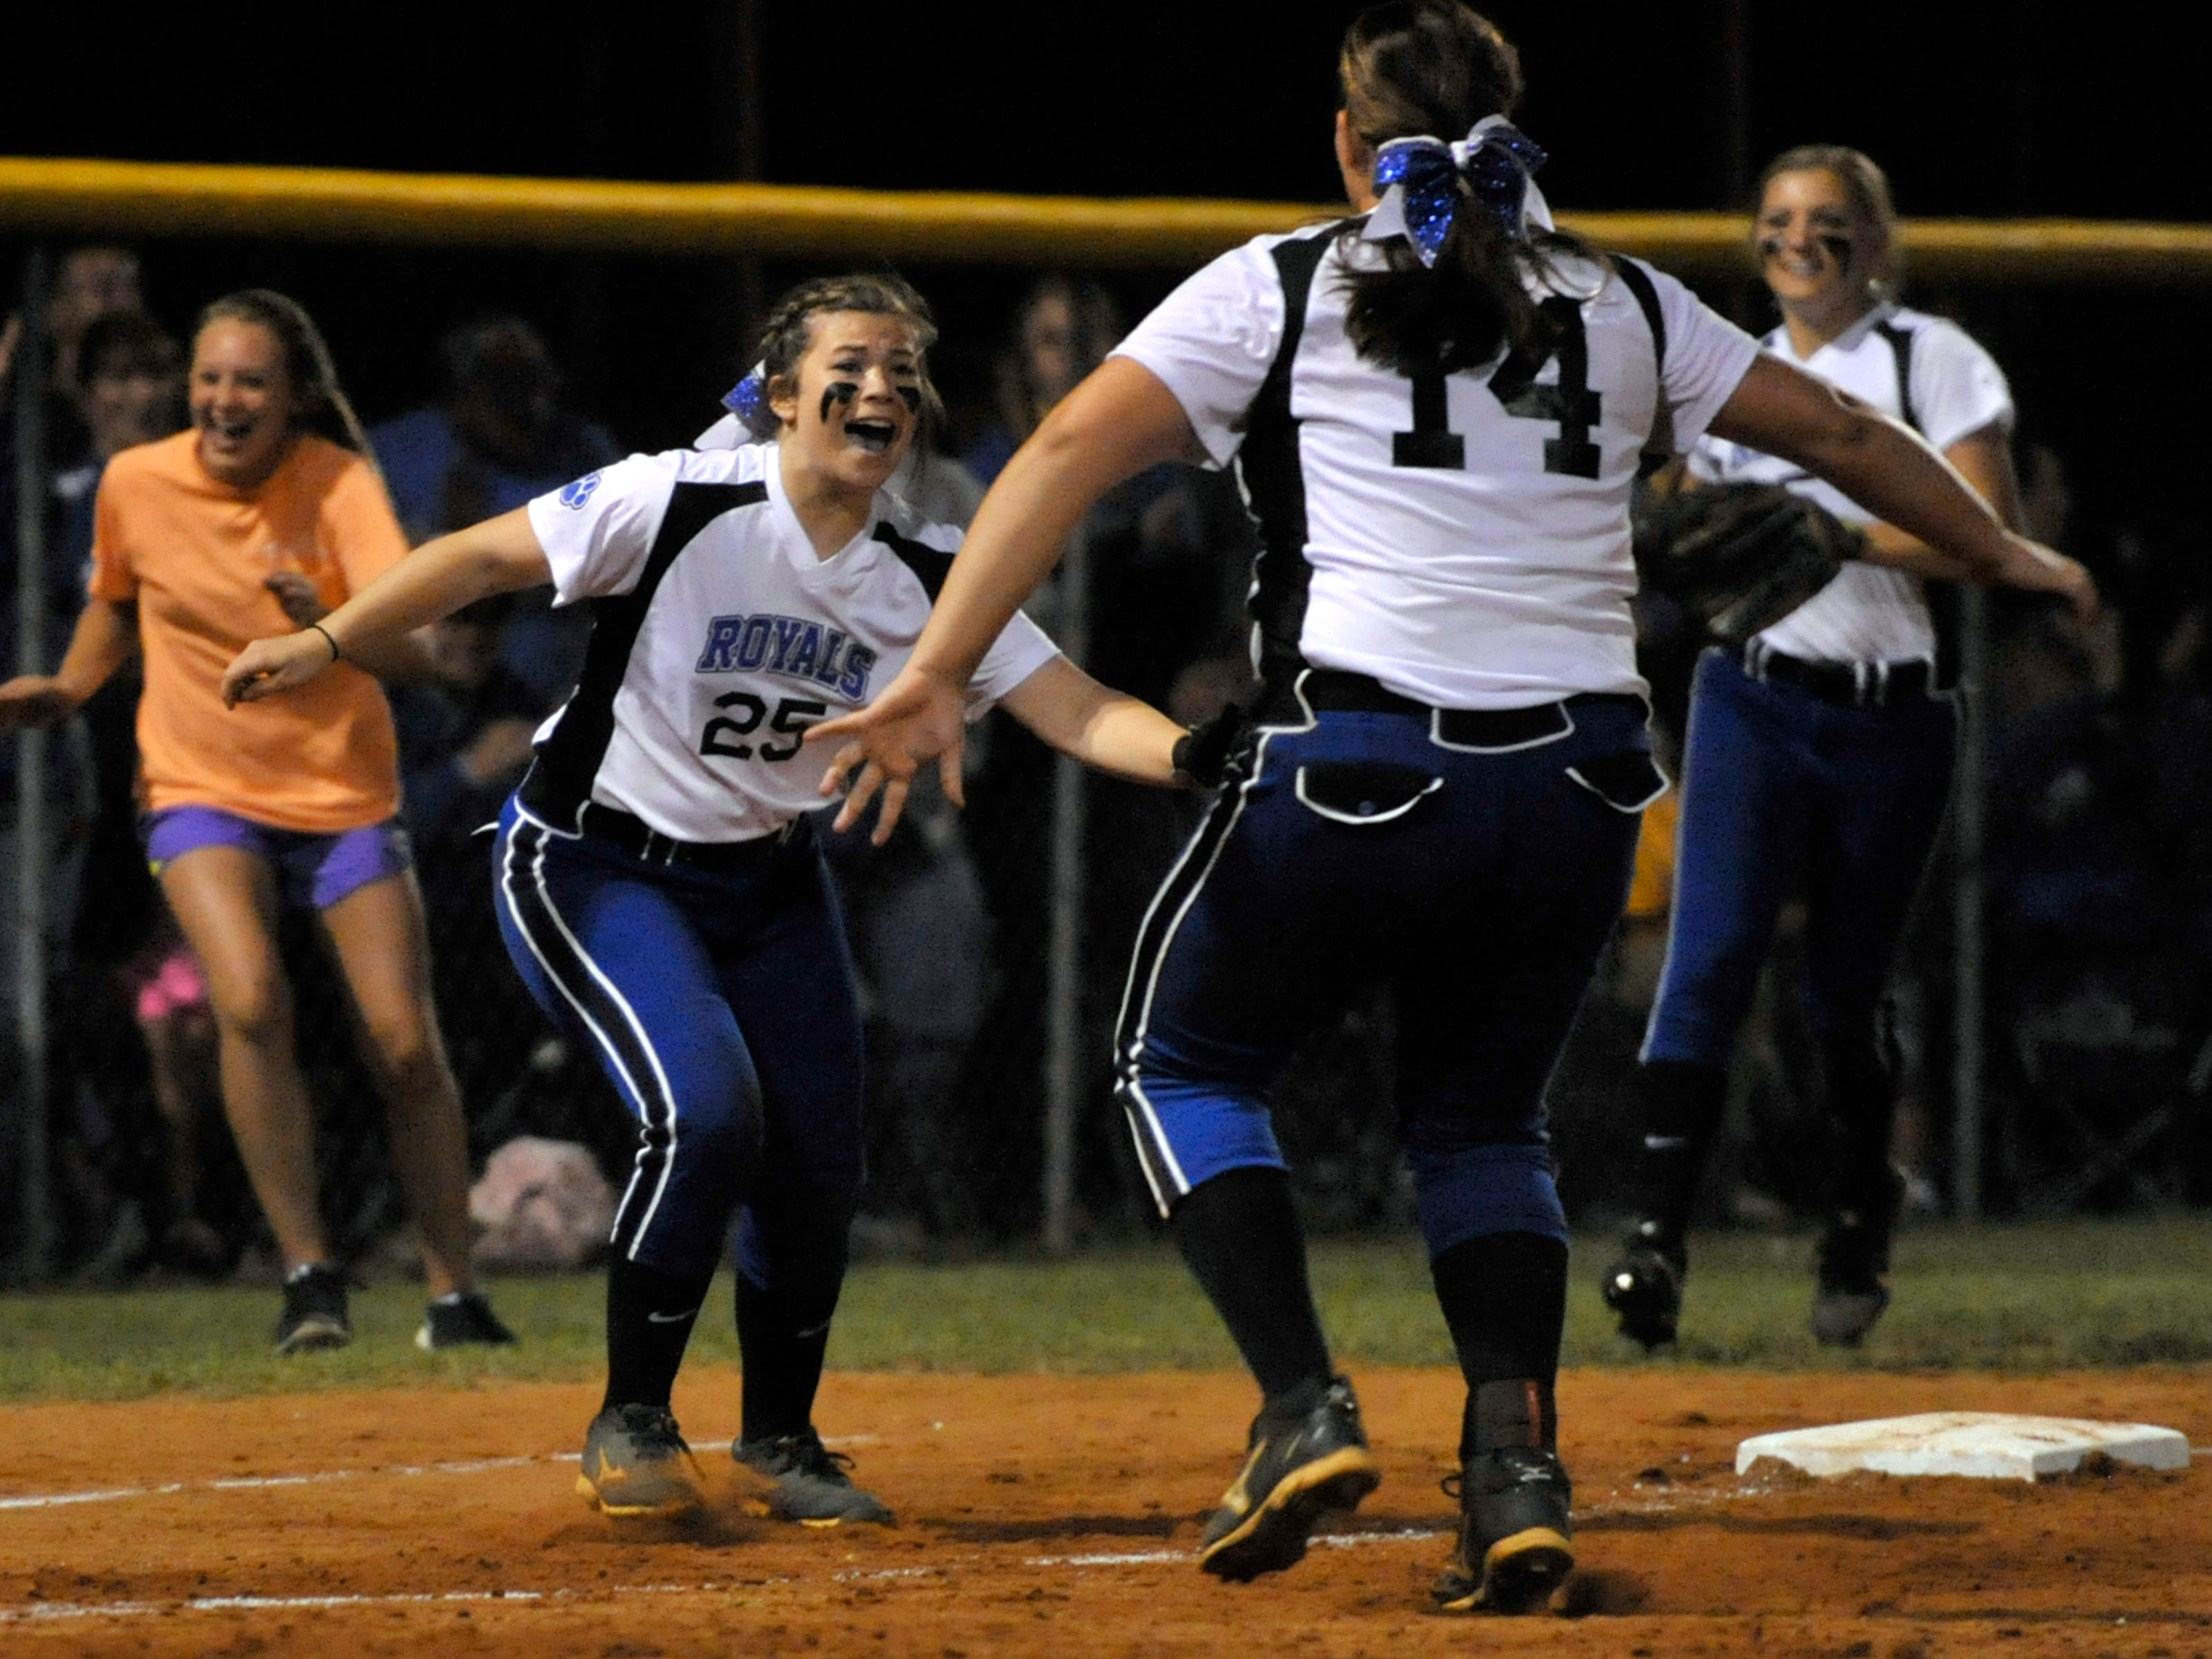 Kolby Bray, No. 25 of the Jay Royals, rushes over to teammate Destiny Herring to celebrate Jay beating the Chipley Tigers.